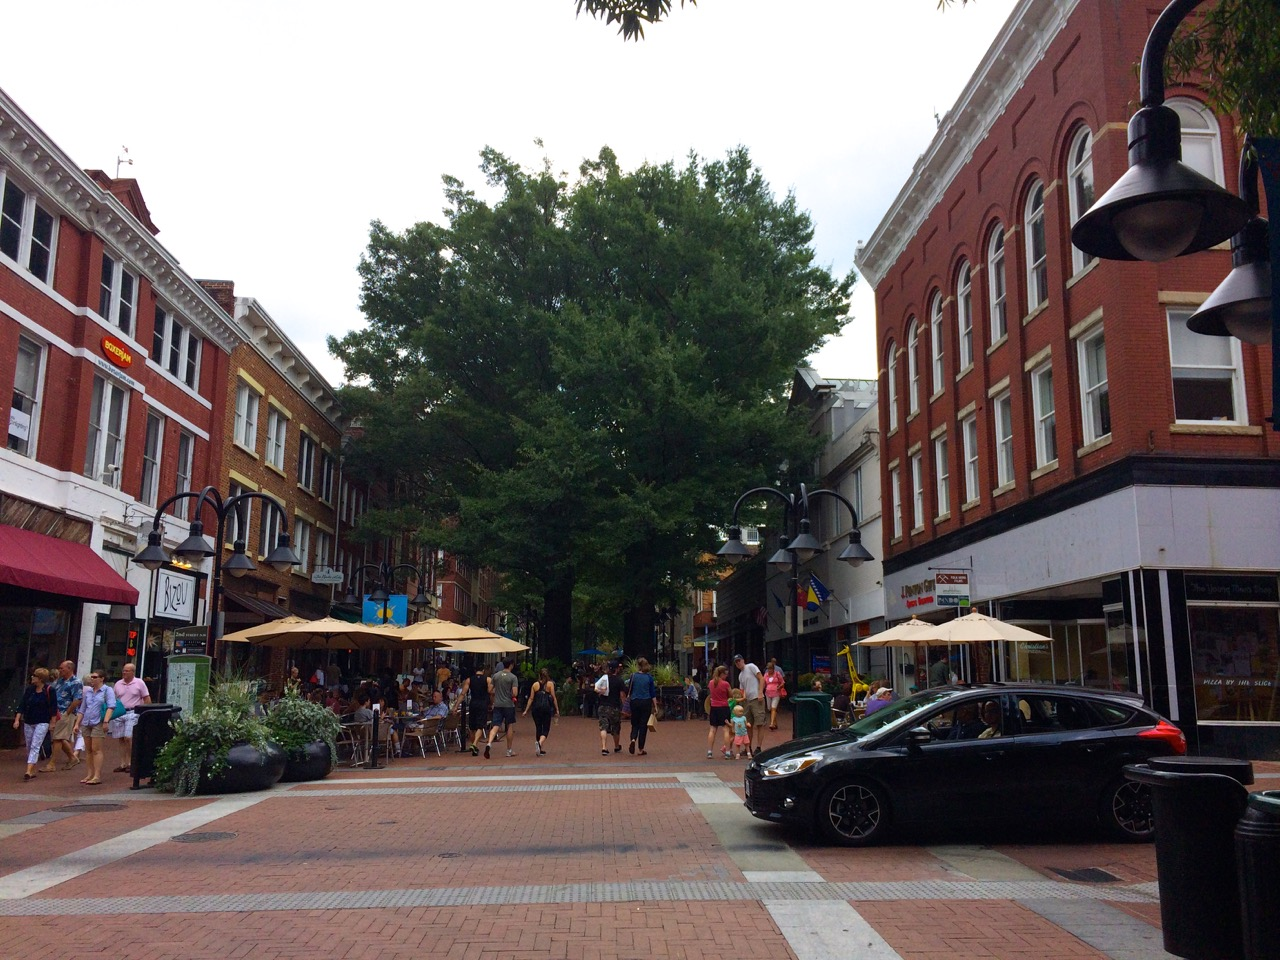 Charlottesville-VA-downtown-IthacaBuilds-08091401